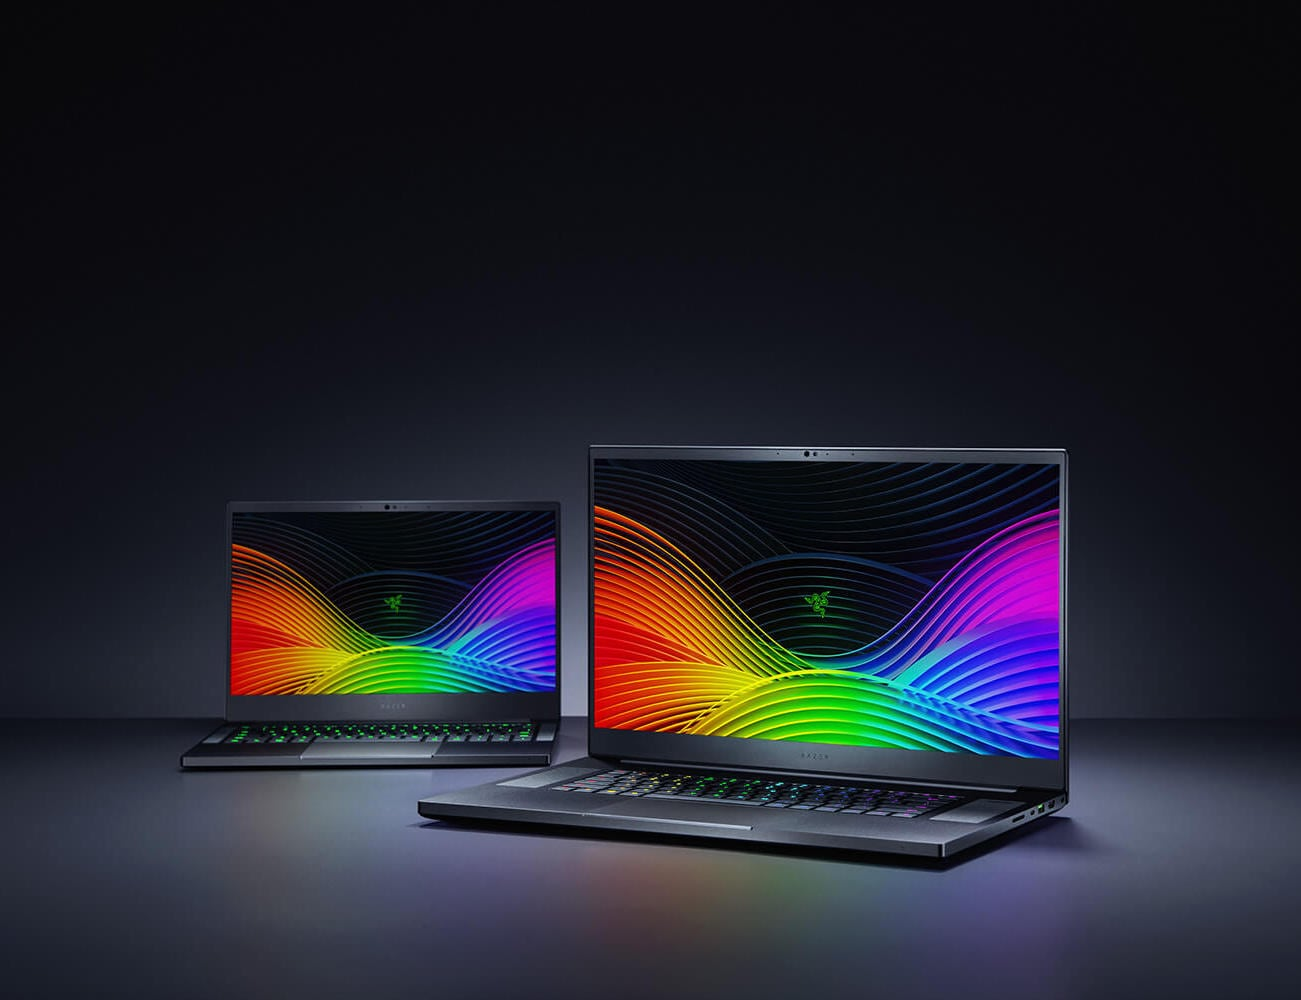 The best new tech revealed at Computex 2019 - Razer Blade Pro 17 2